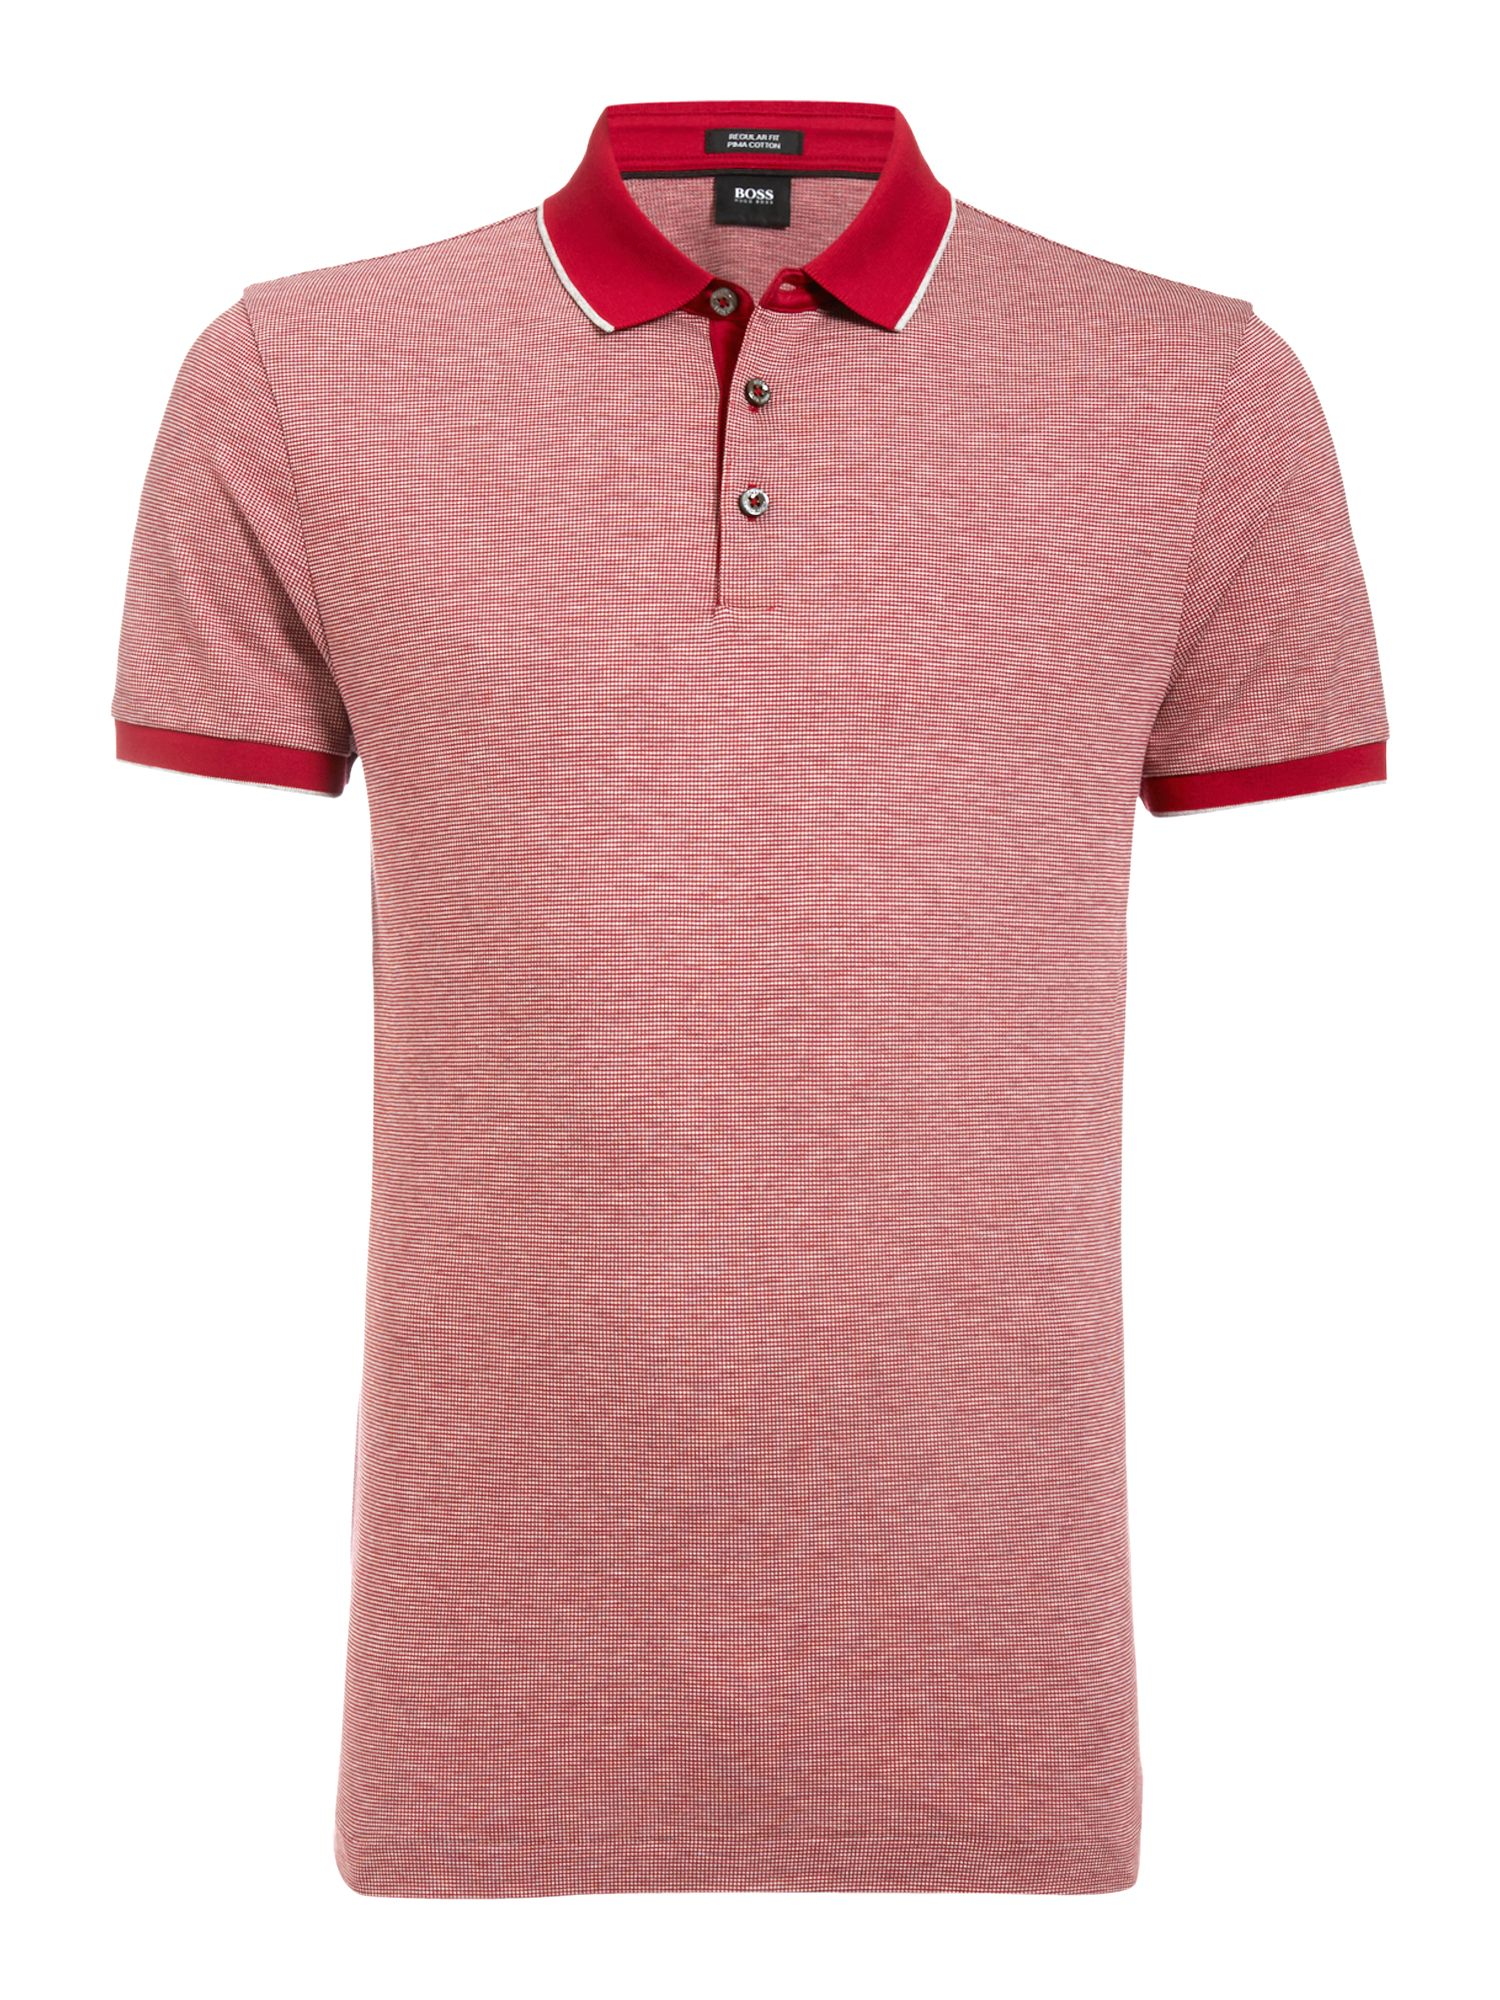 Men's Hugo Boss Jacquard Regular Fit Polo Shirt, Red